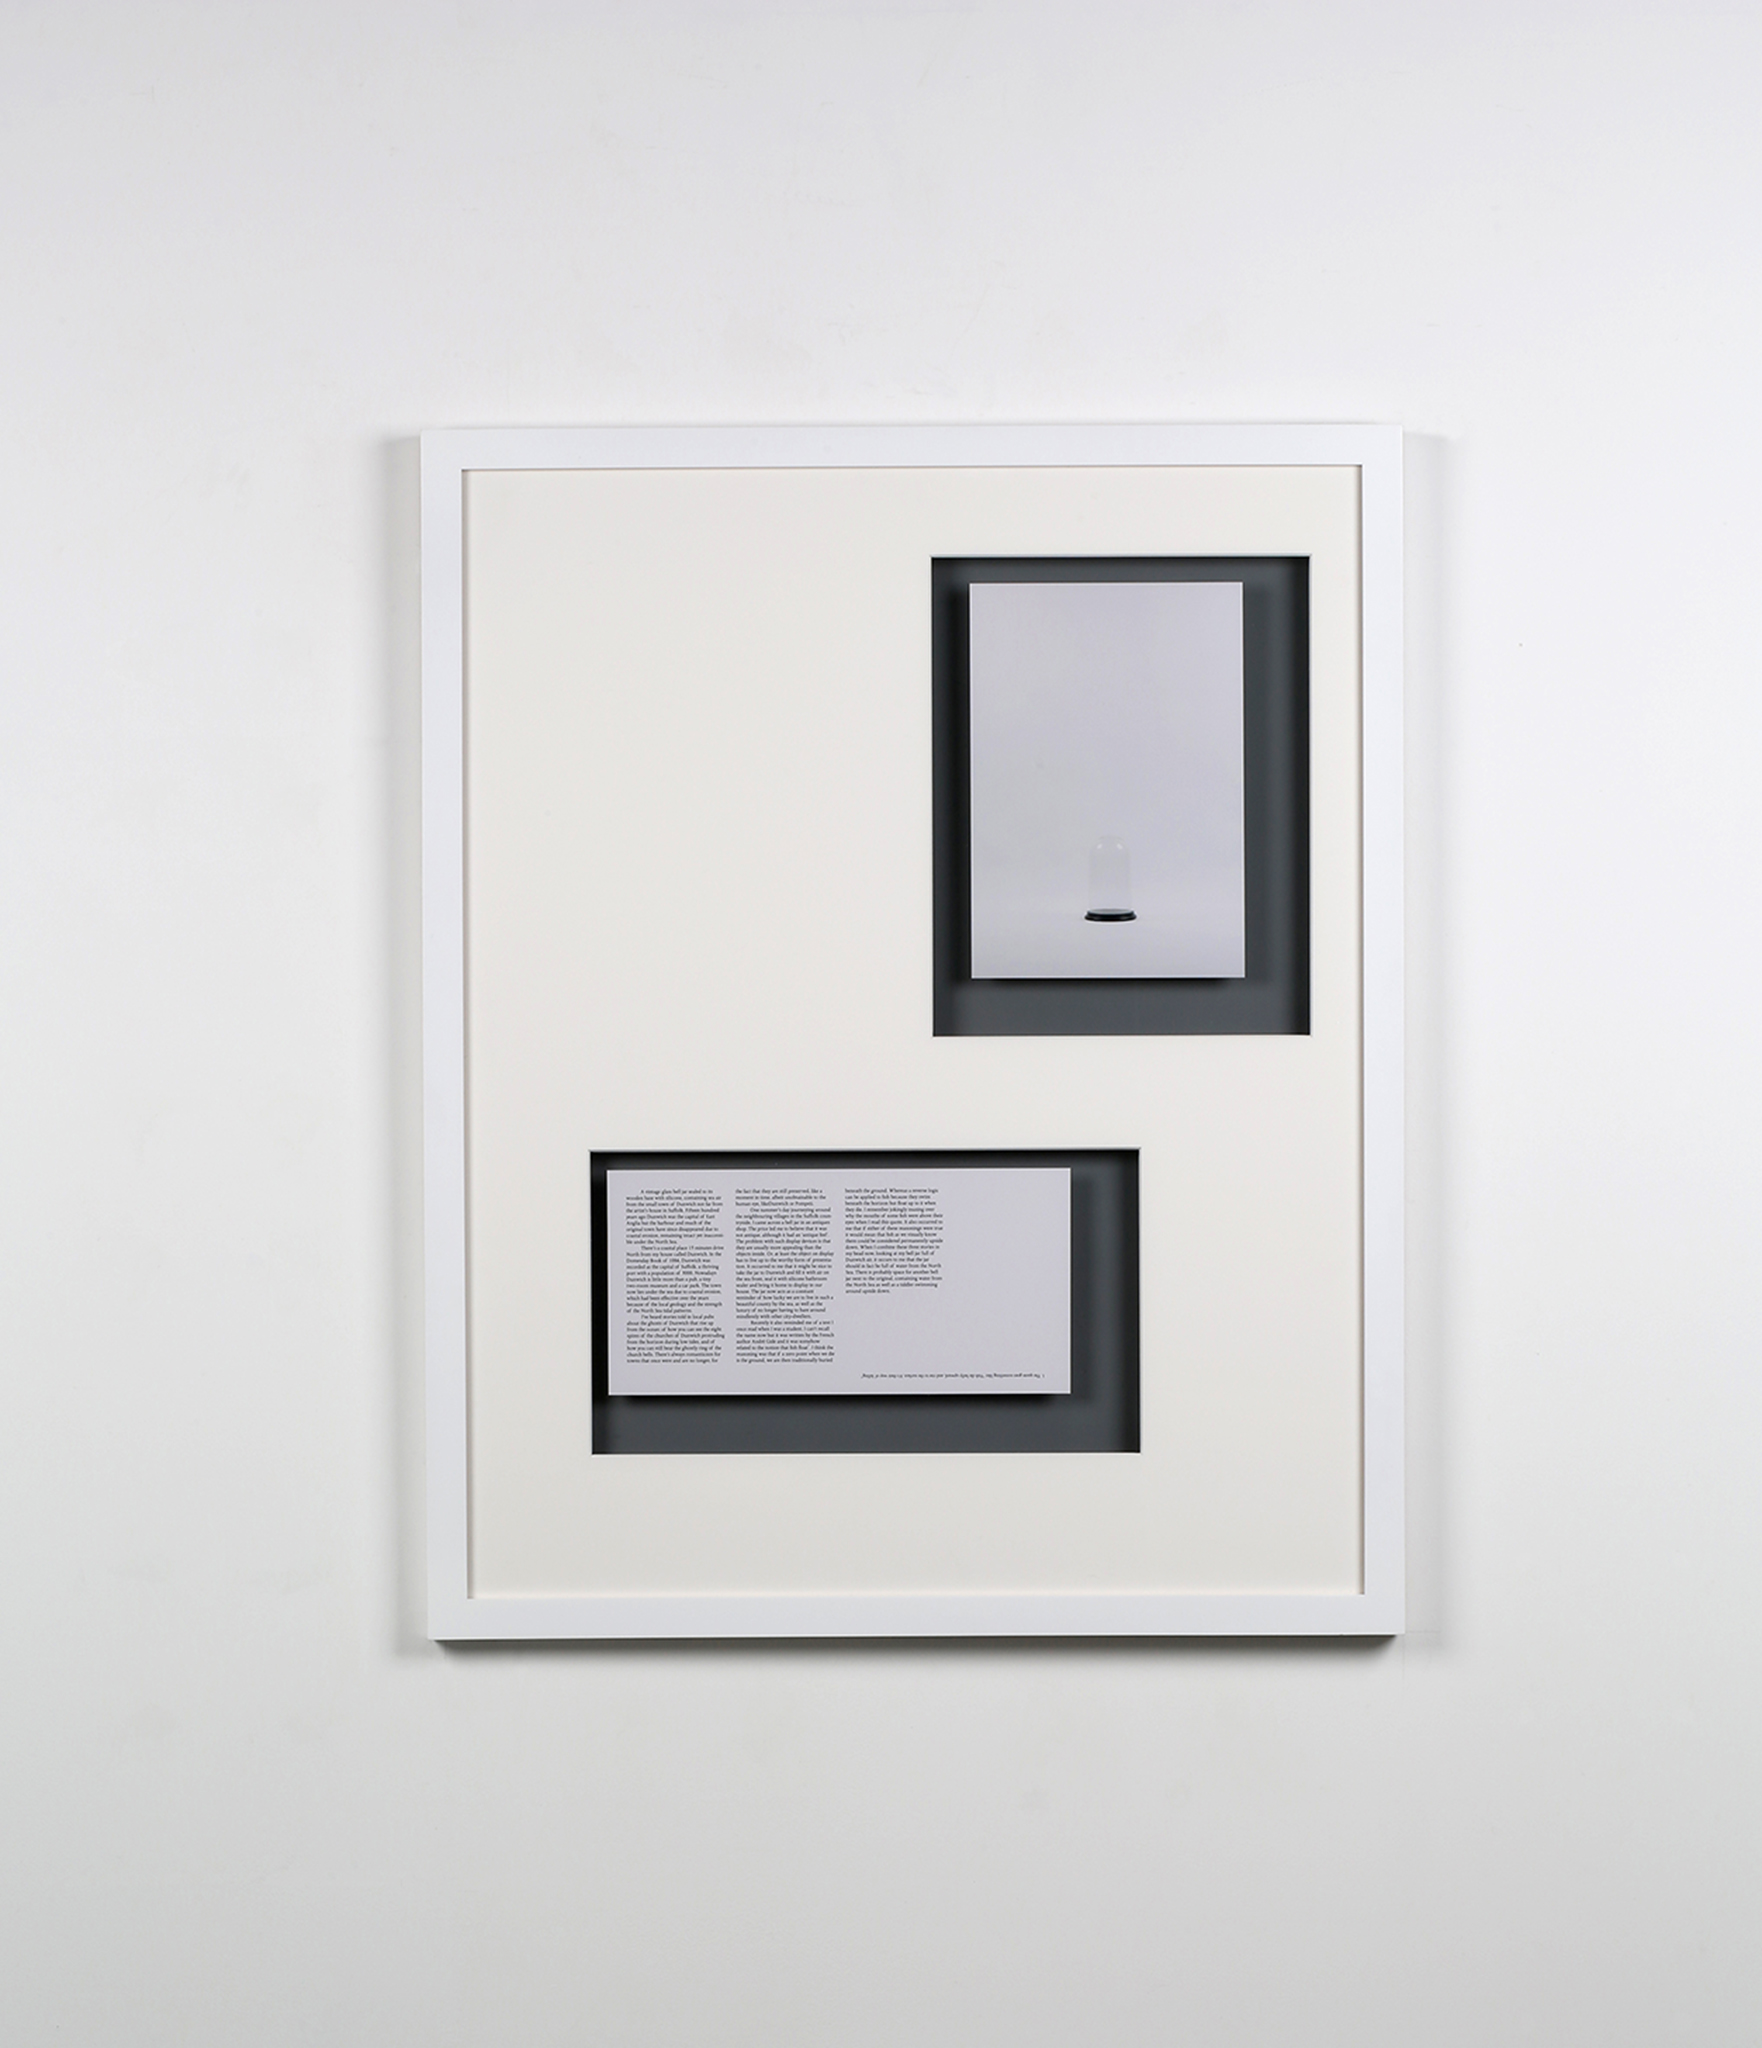 Ryan Gander | Pushed into a corner by the logic of my own making ...